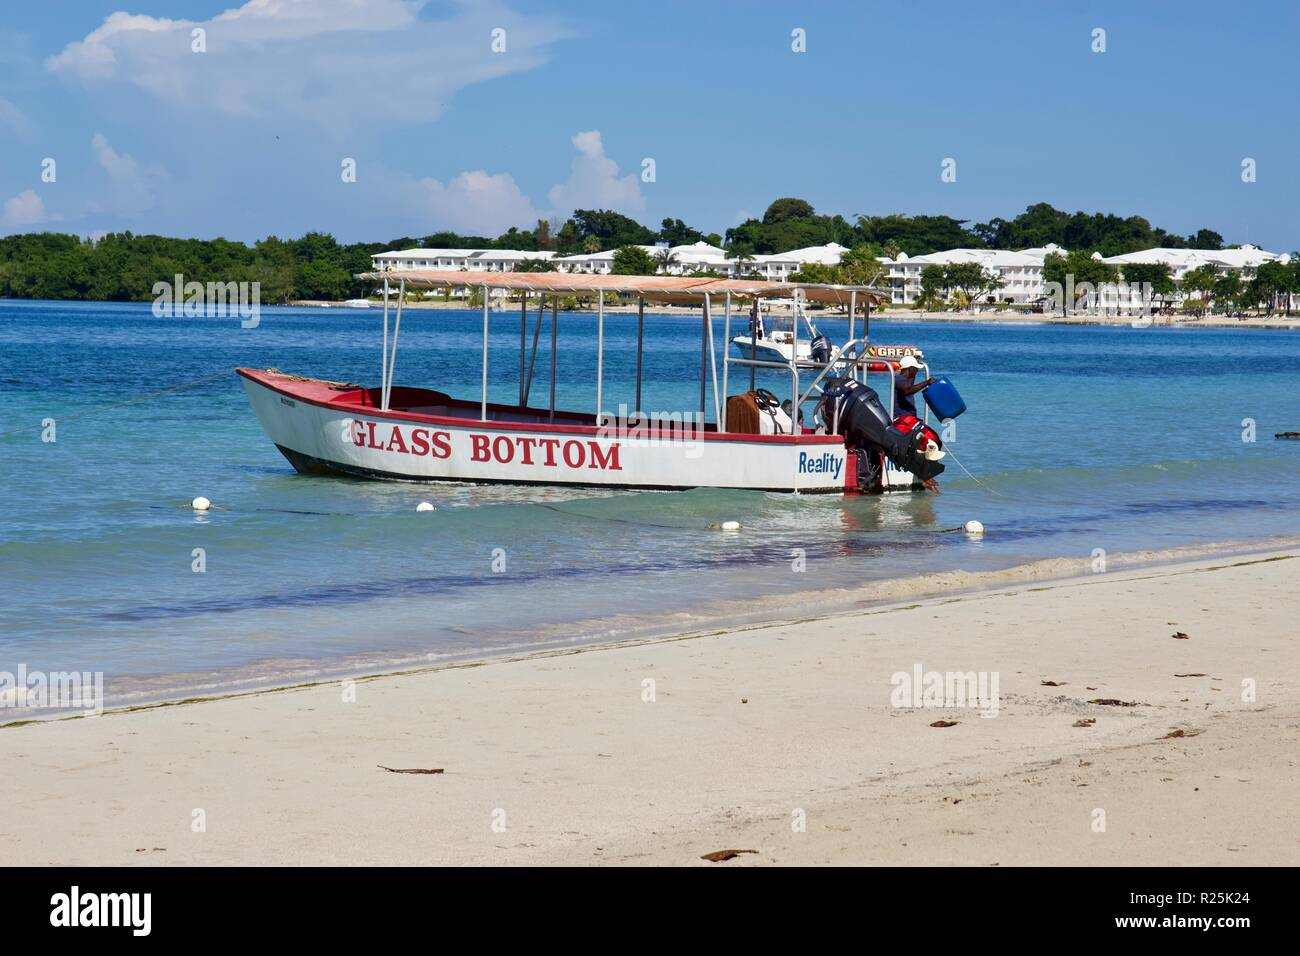 A glass bottom tourist boat on the Seven mile beach in Negril, Jamaica - Stock Image